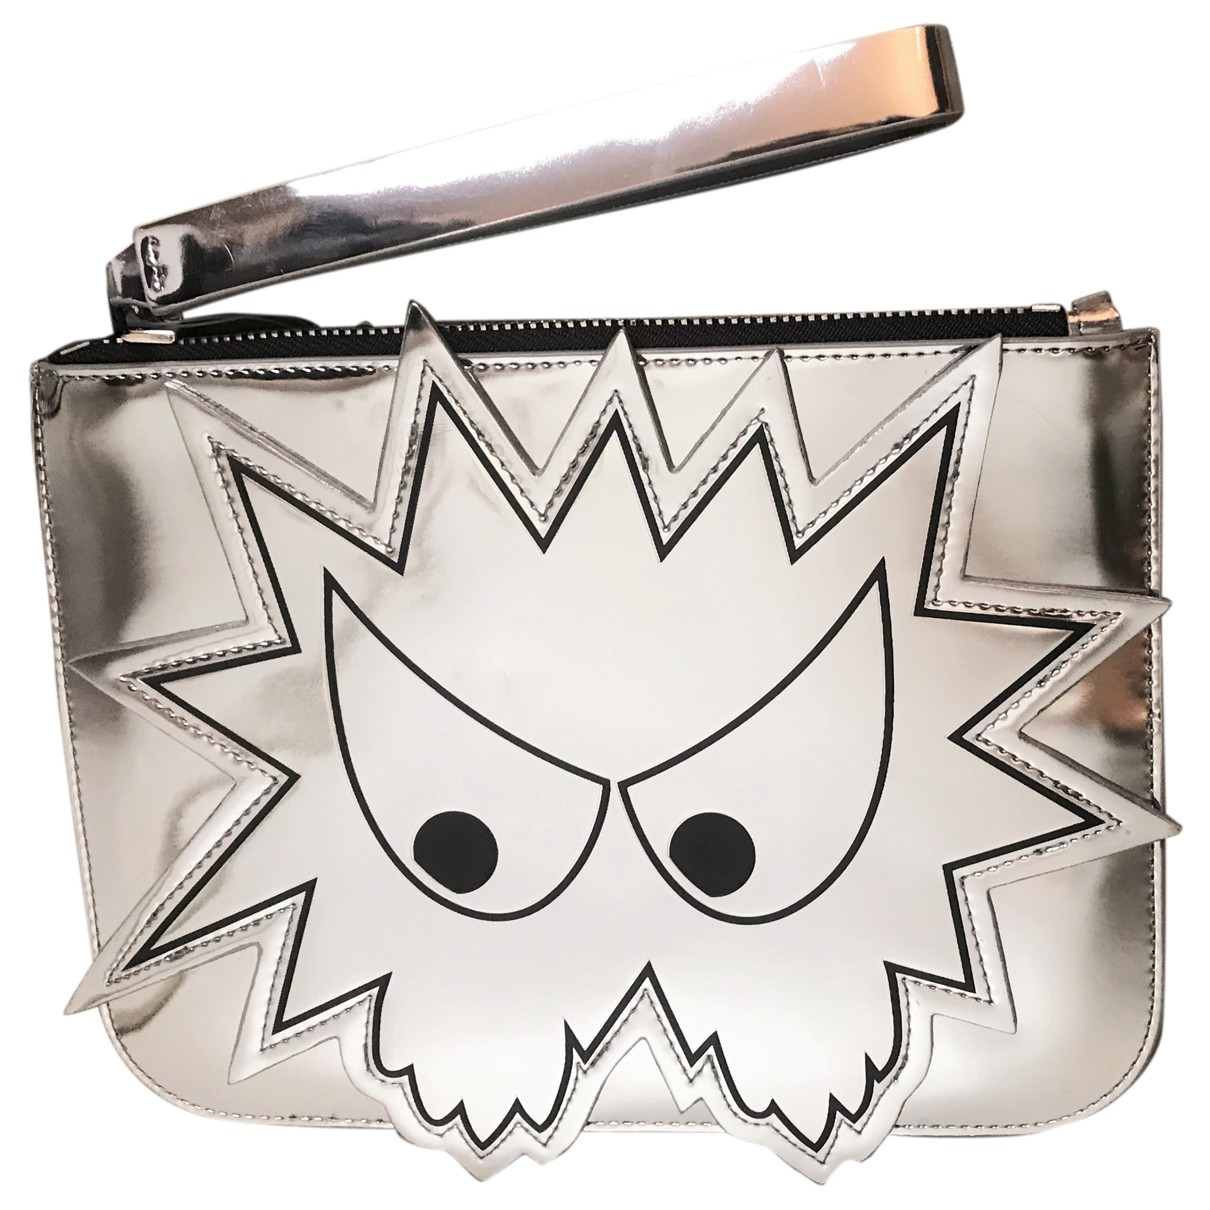 Mcq N Silver Patent leather Clutch bag for Women N